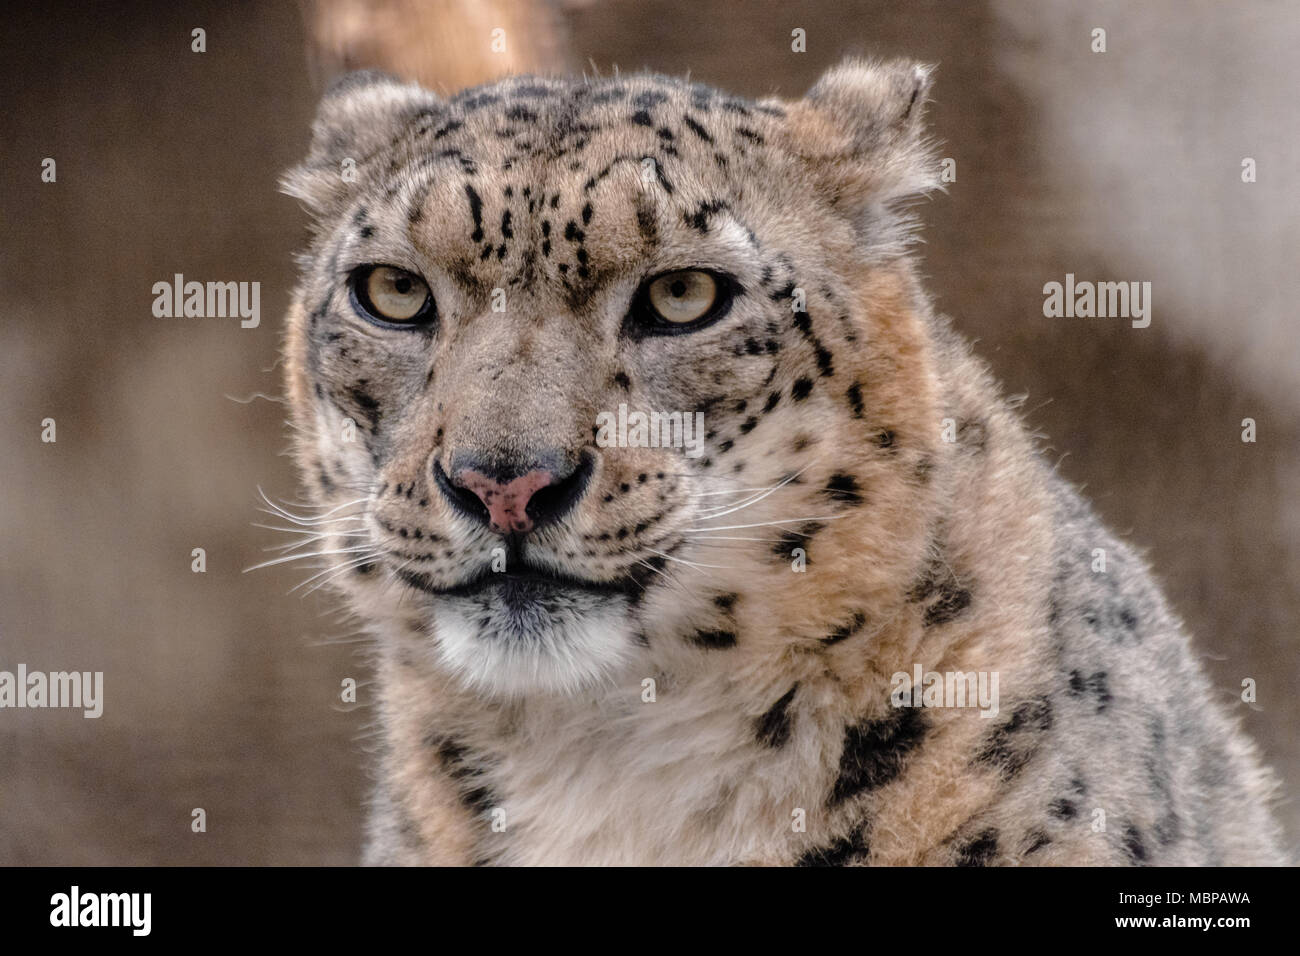 Snow leopard or ounce (Panthera uncia), looking at you - Stock Image